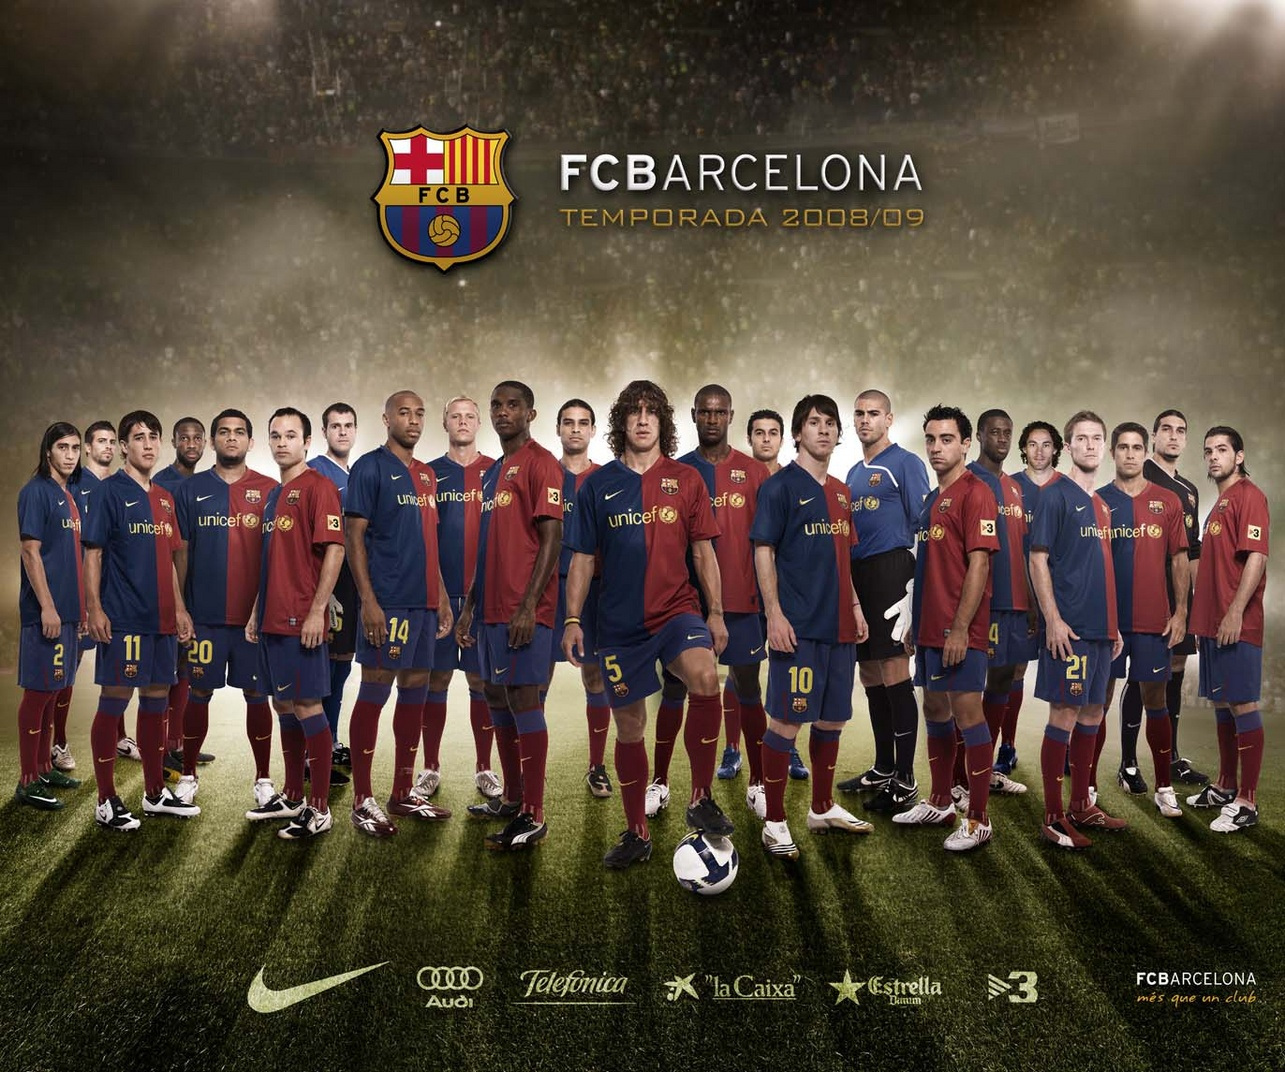 Soccer: Football Wallpapers, Pictures And